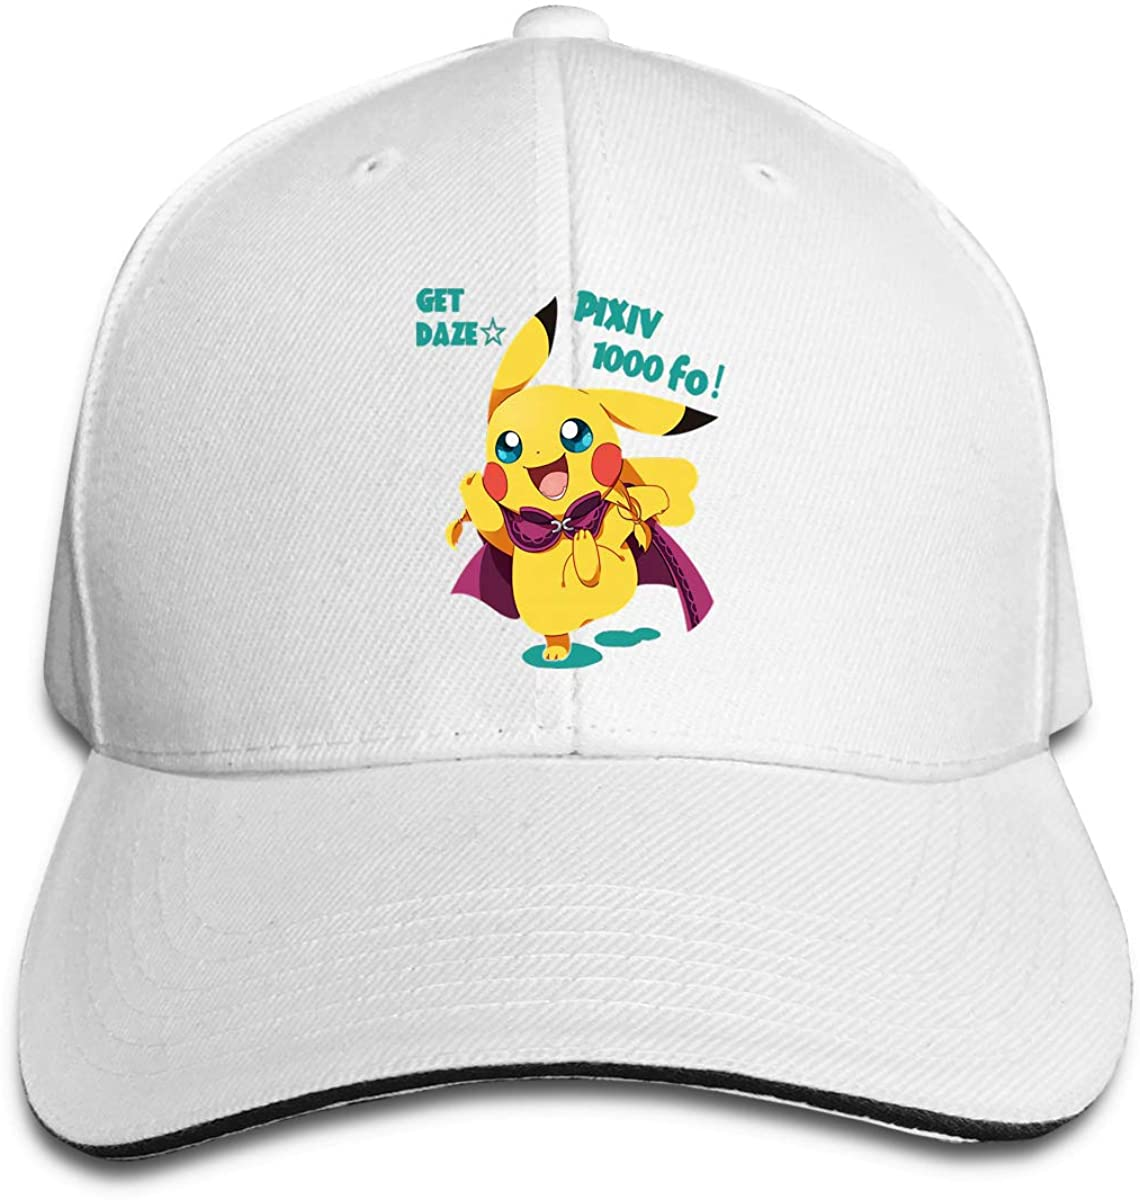 Pikachu Breathable Sunscreen Sunshade Casual All-Match Hat